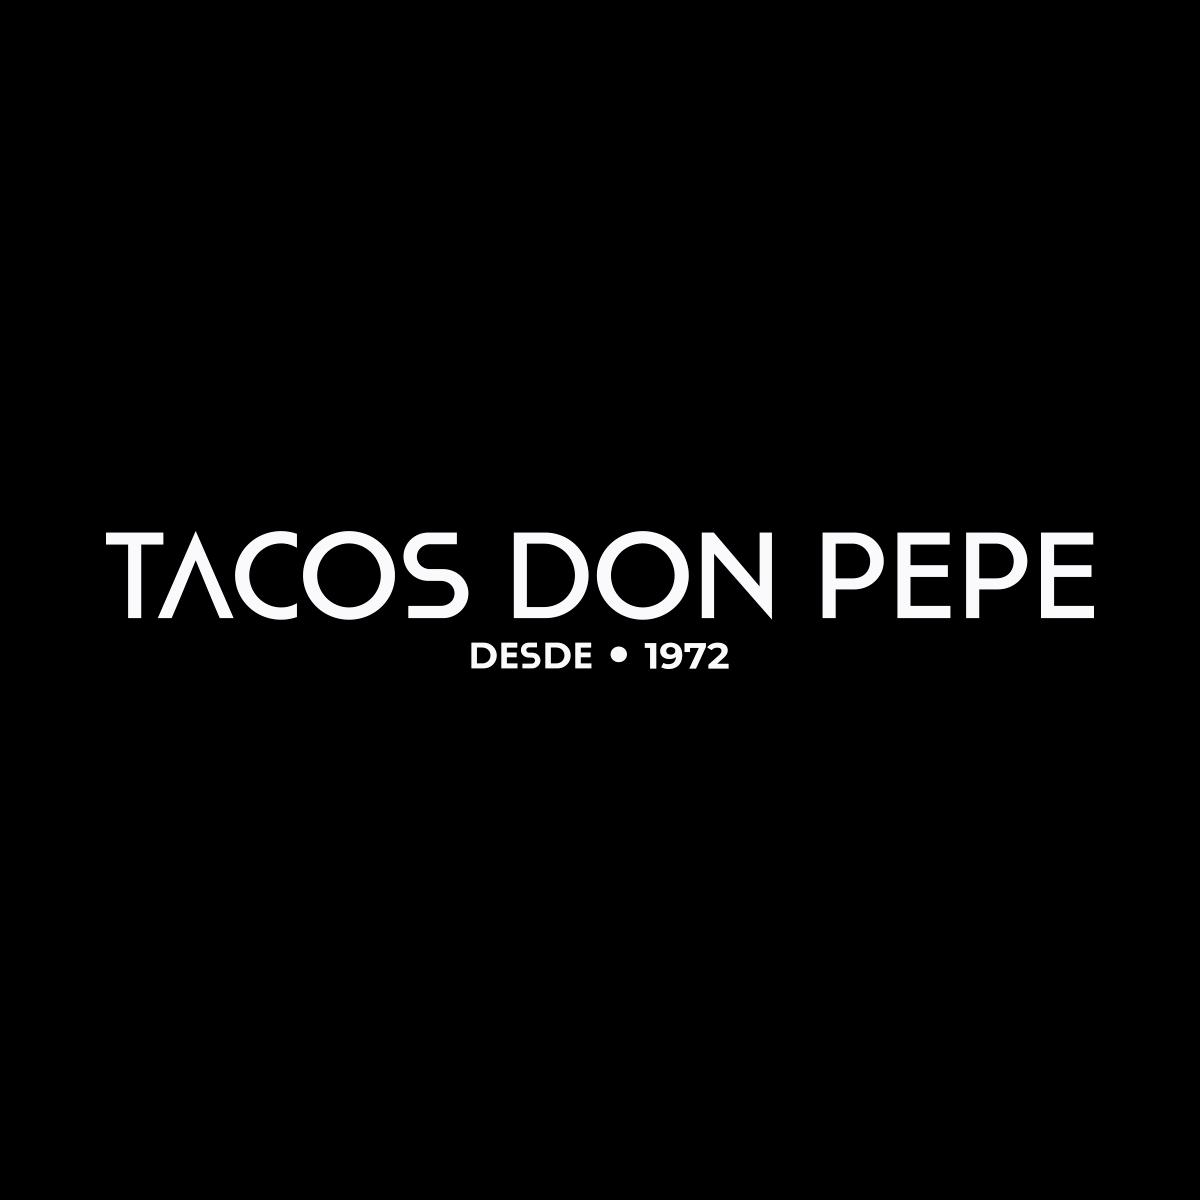 TACOS DON PEPE